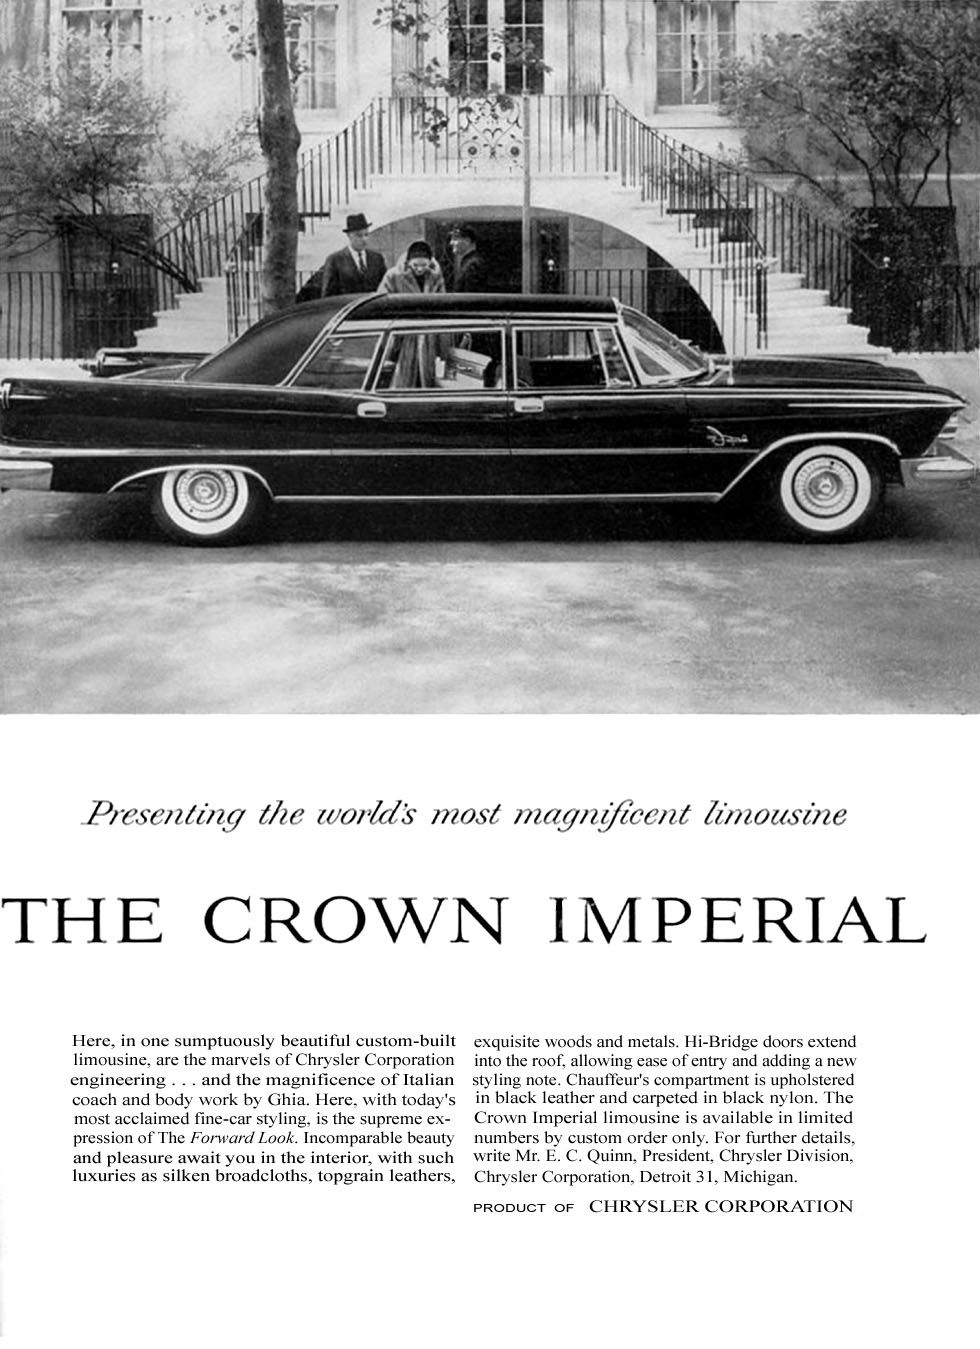 1958 Chrysler Crown Imperial ad | THE MIGHTY CHRYSLER! | Pinterest ...